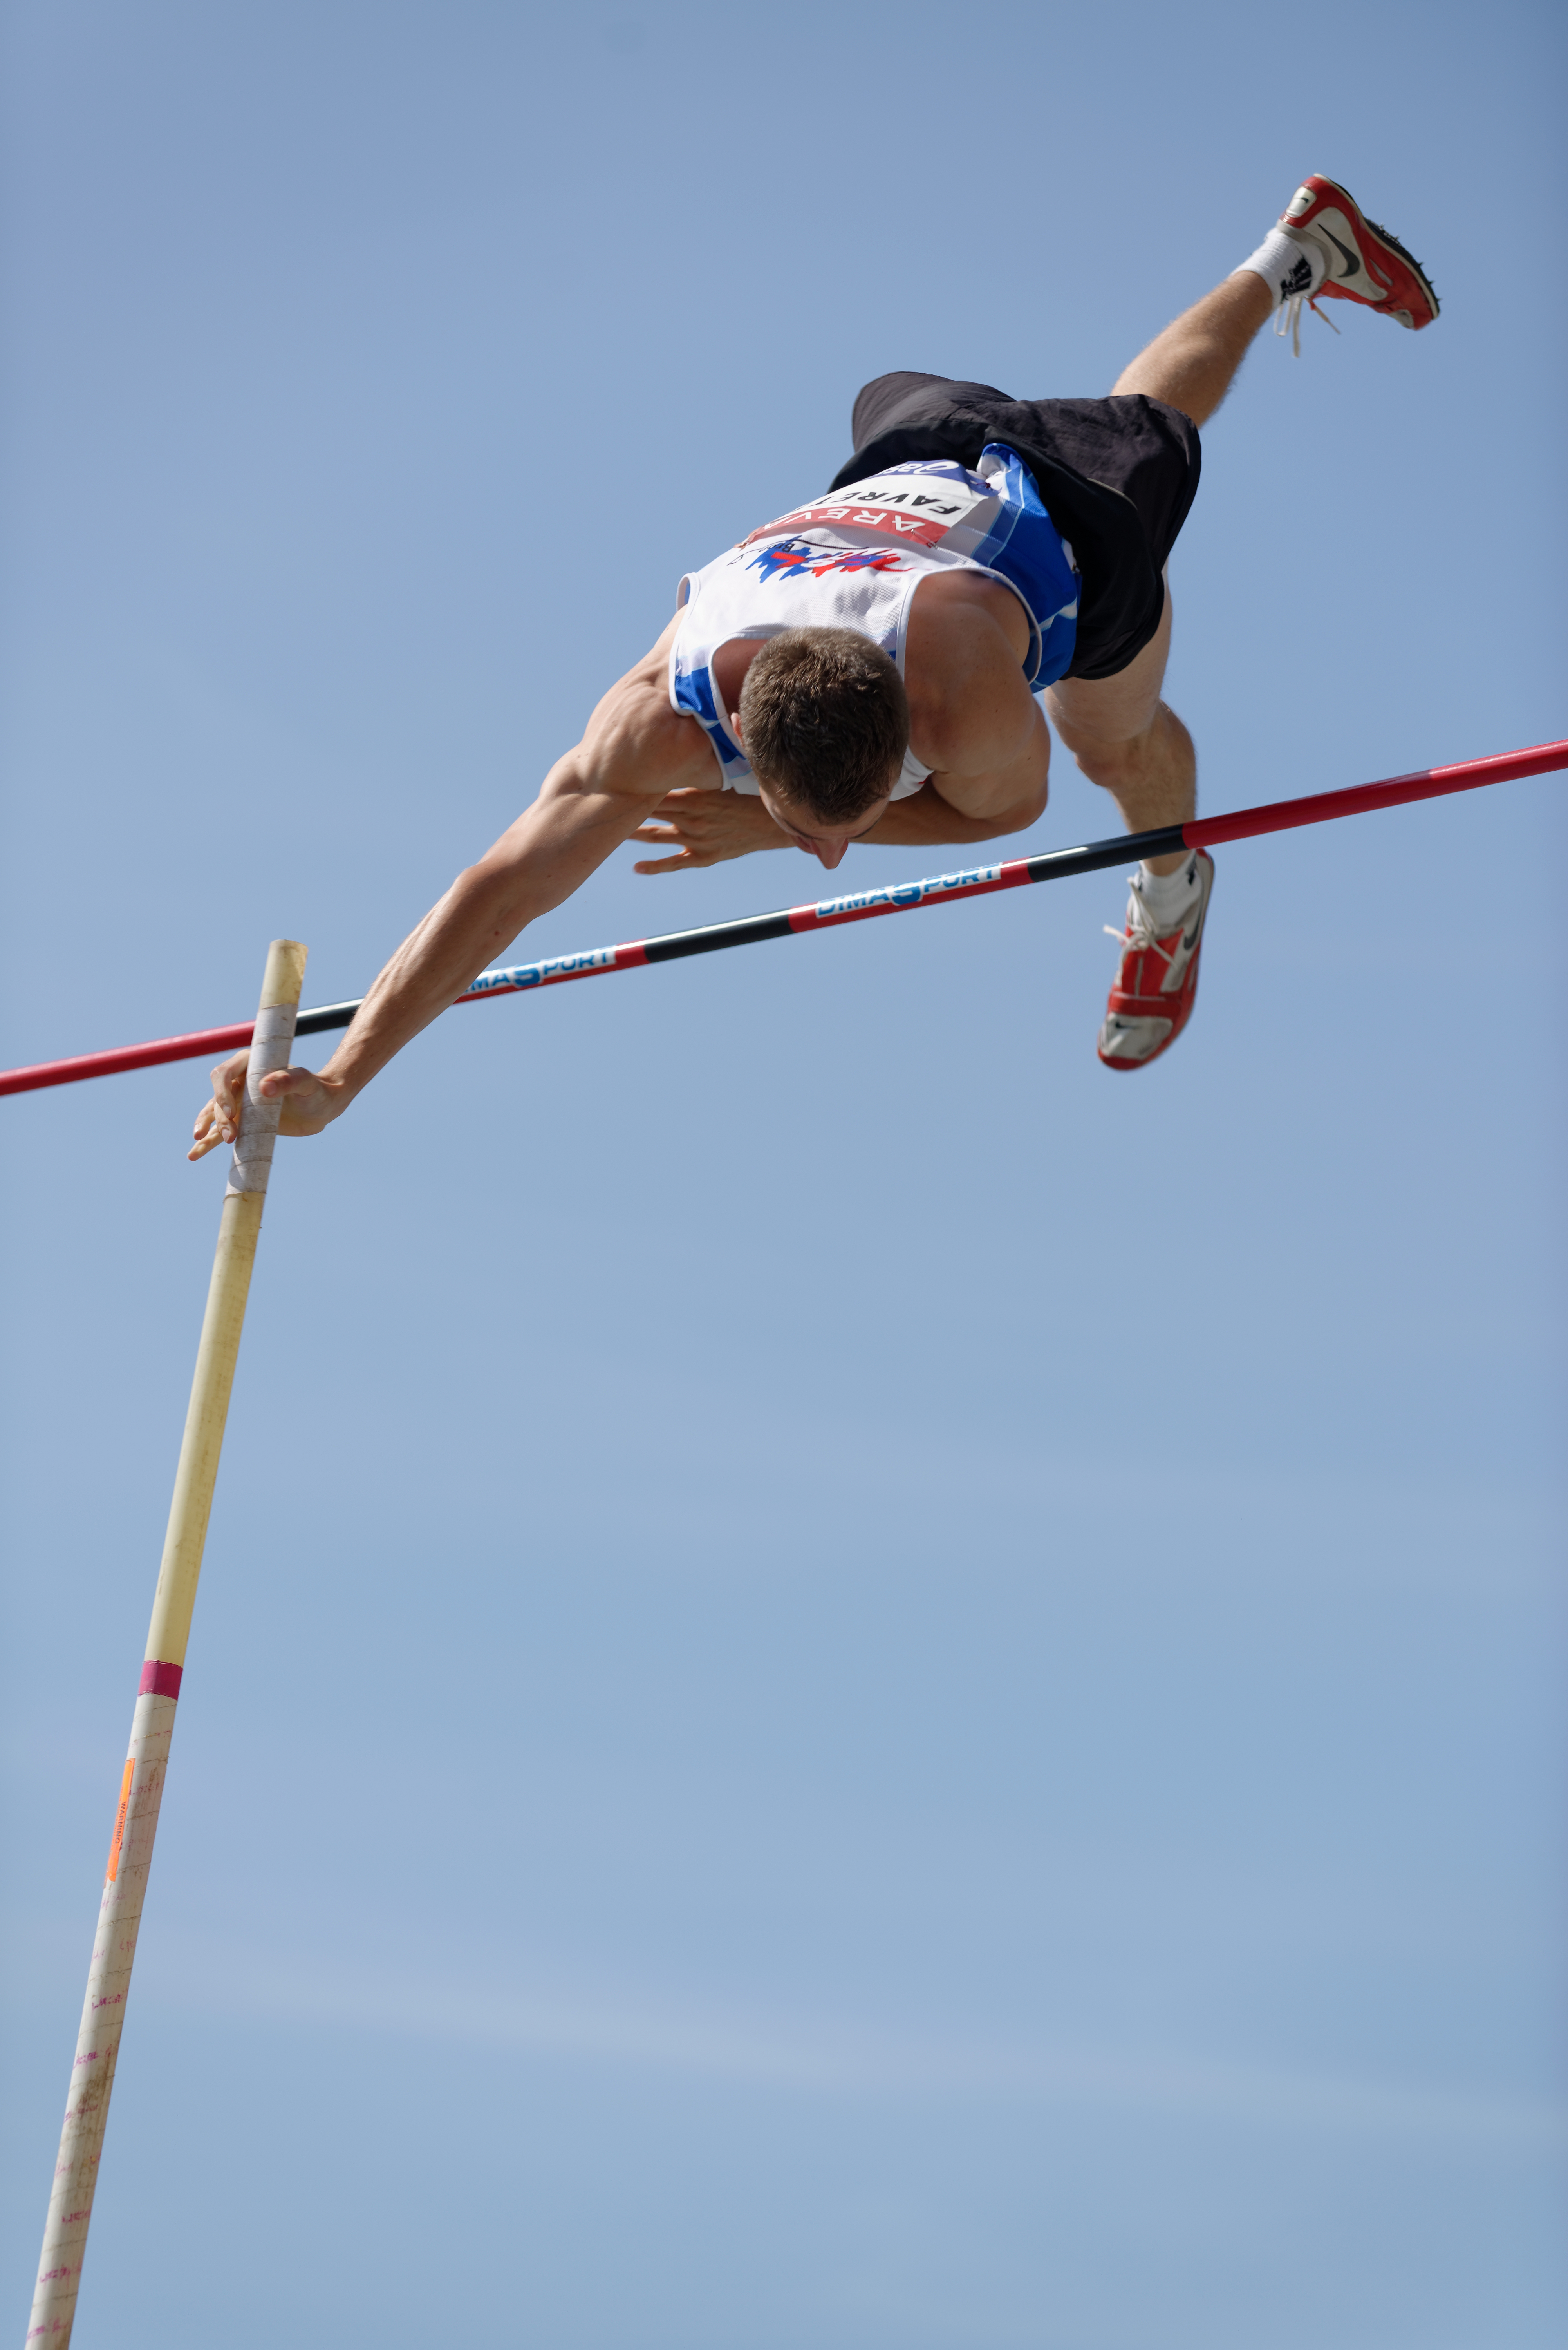 an introduction to the history of pole vaulting The pole vault originated in europe, where men used the pole to cross canals filled with waterthe goal of this type of vaulting was distance rather than height in the late 1800s, colleges.